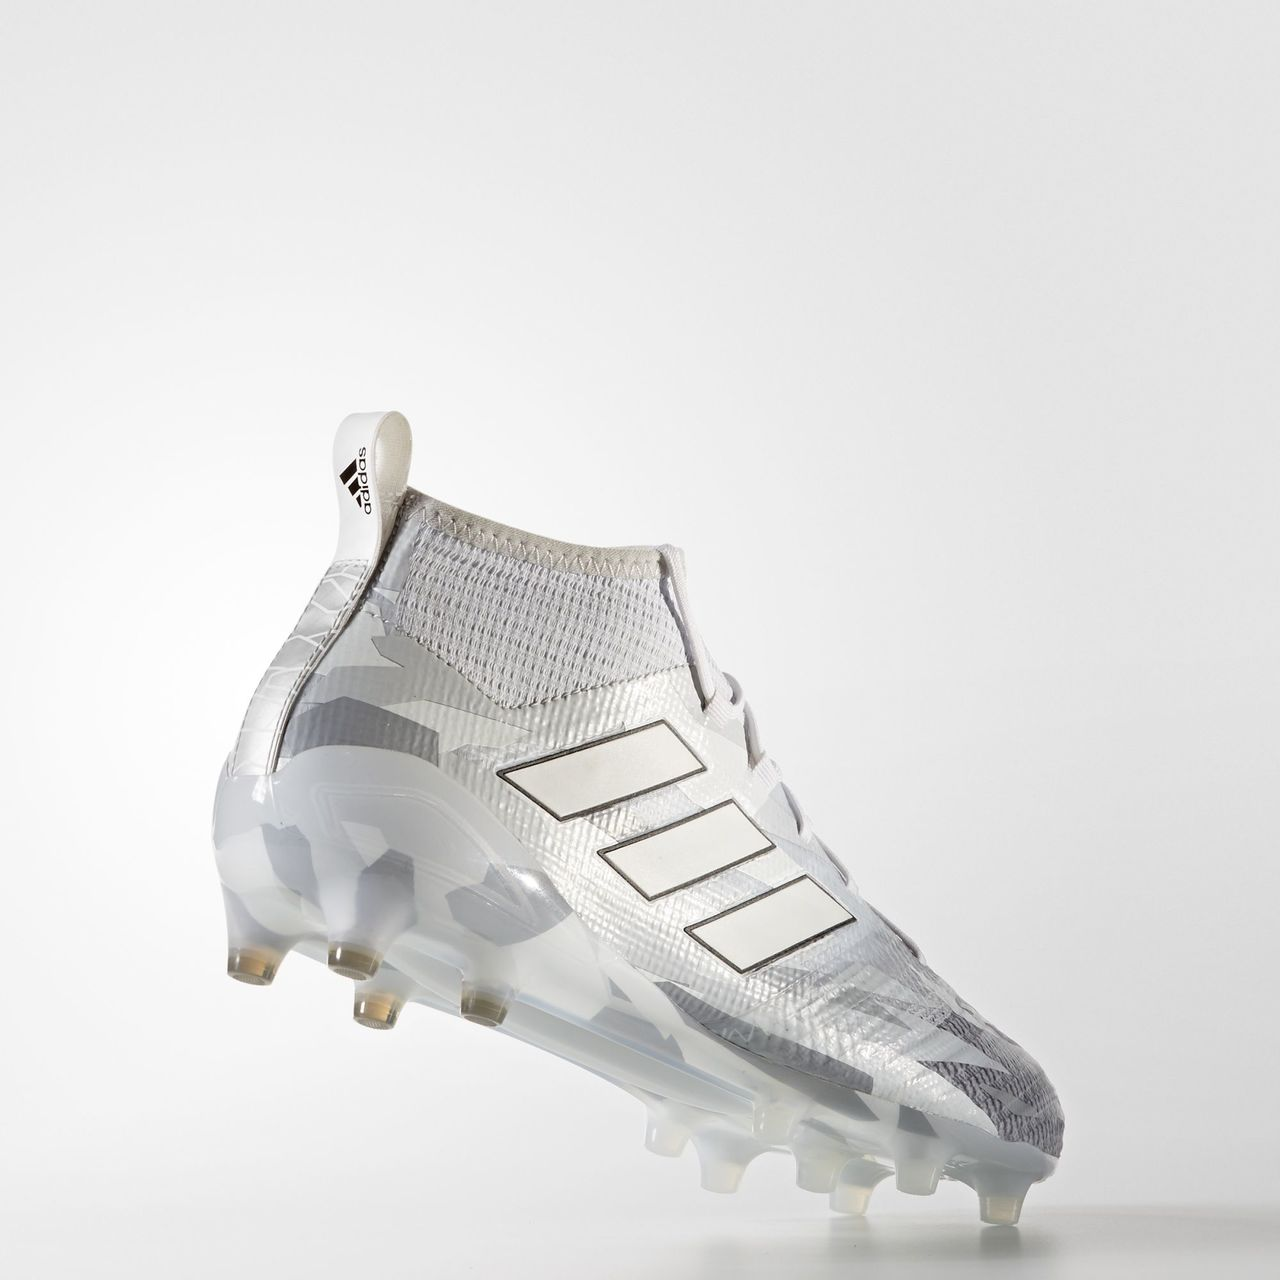 9b67fca0d ... Click to enlarge image  adidas ace 17 1 primeknit firm ground boots camouflage clear grey footwear white core black e.jpg  ...